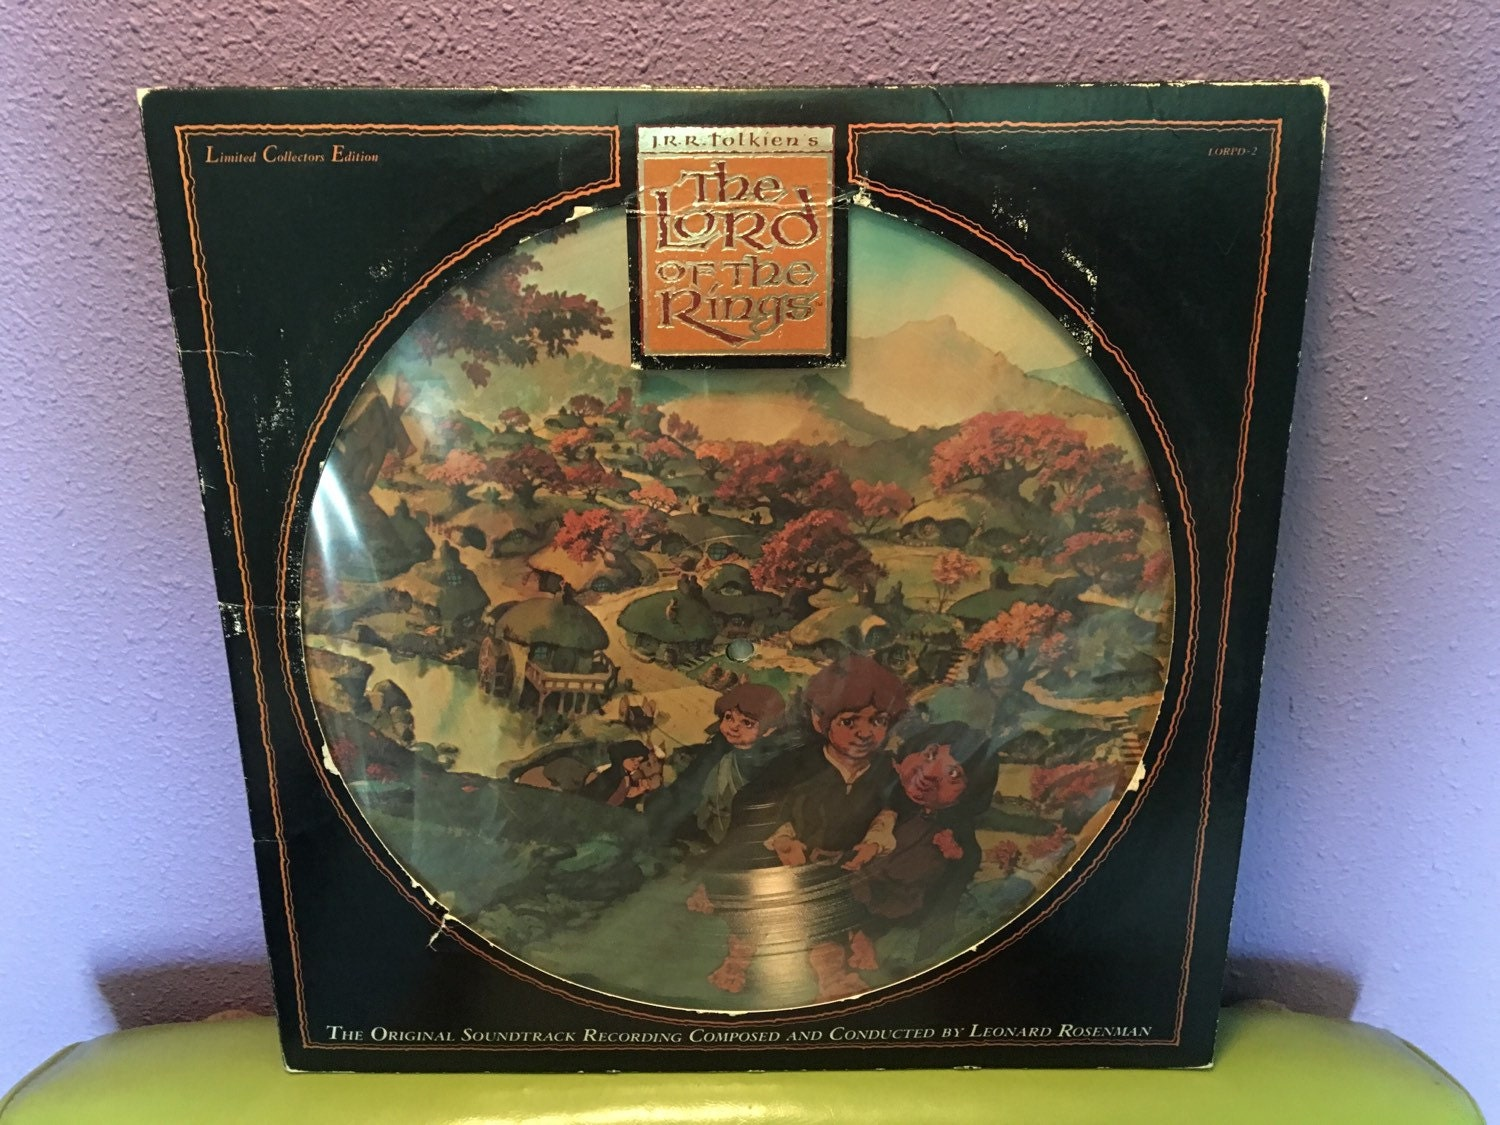 Vinyl Record Album The Lord Of The Rings Original Soundtrack